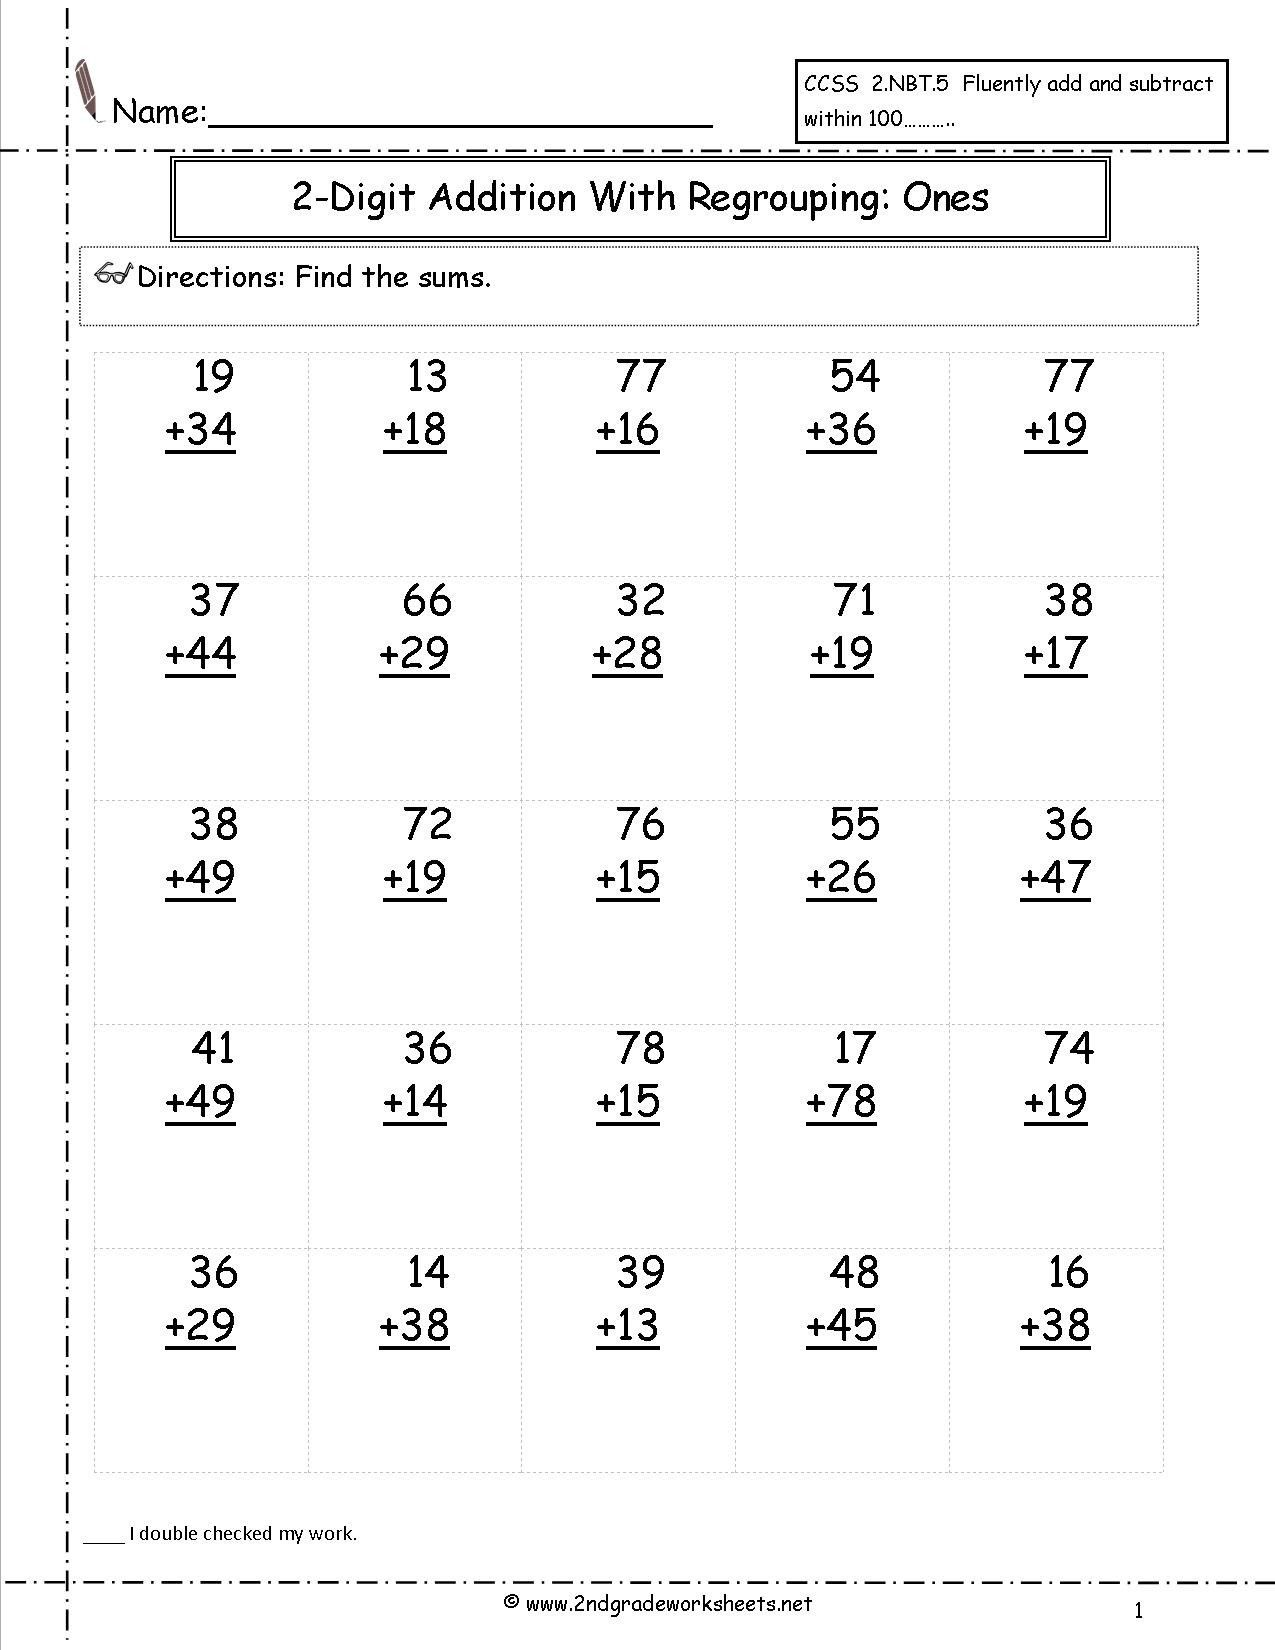 Language Arts Worksheets Kindergarten Worksheet For Kindergarten 2nd Grade Math Worksheets Math Addition Worksheets First Grade Math Worksheets Addition of two digit numbers with